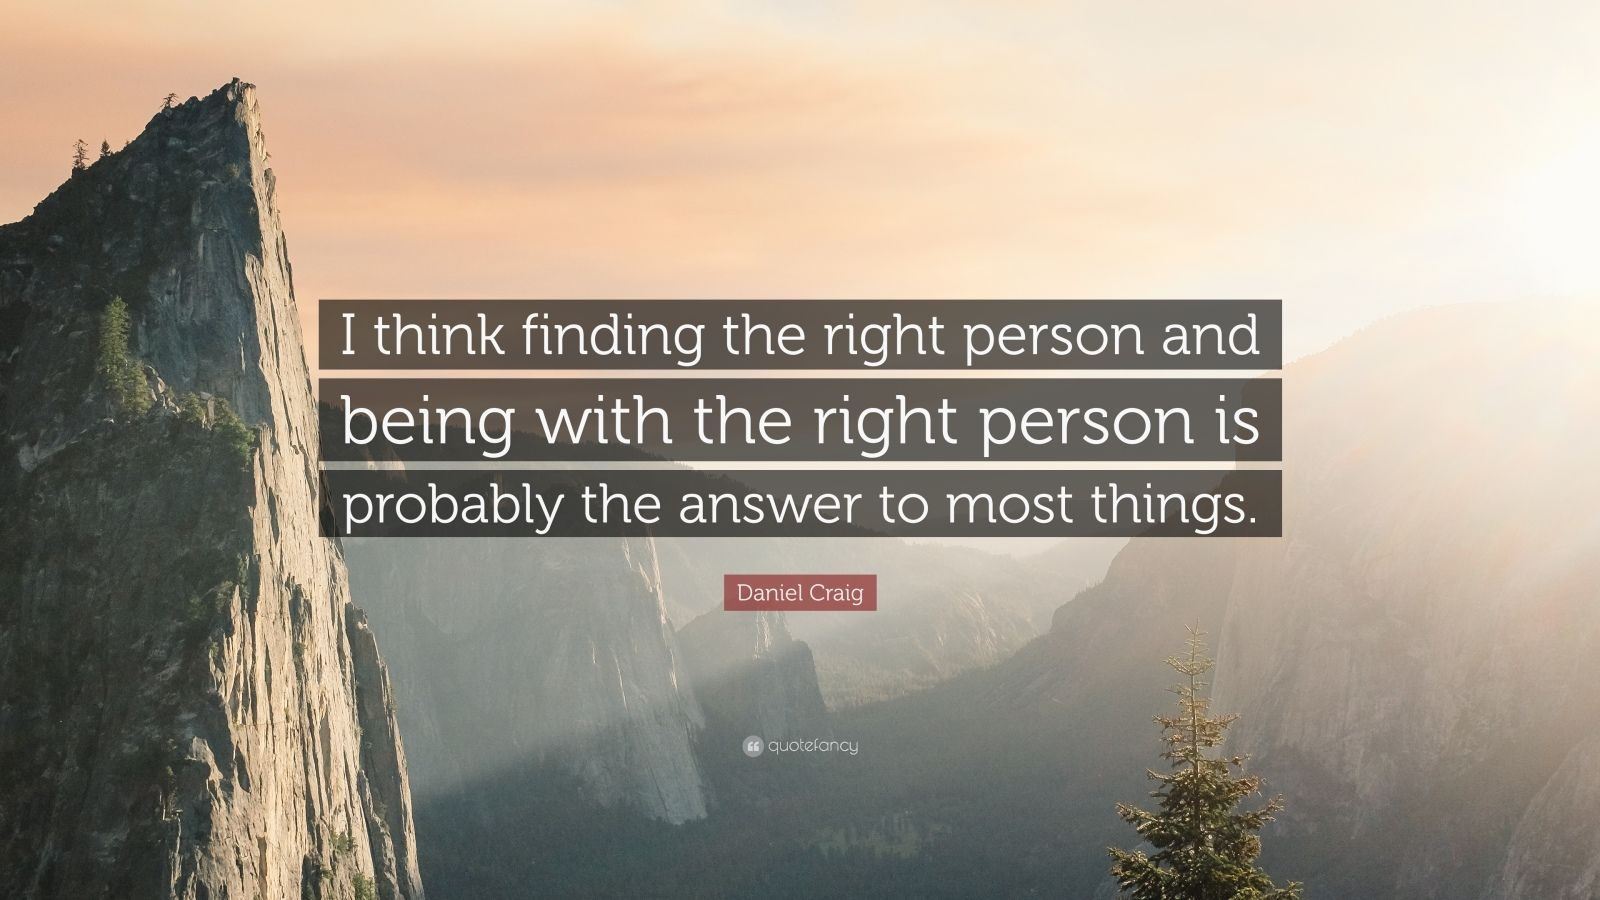 """Daniel Craig Quote: """"I think finding the right person and being with the right person is probably the answer to most things."""""""